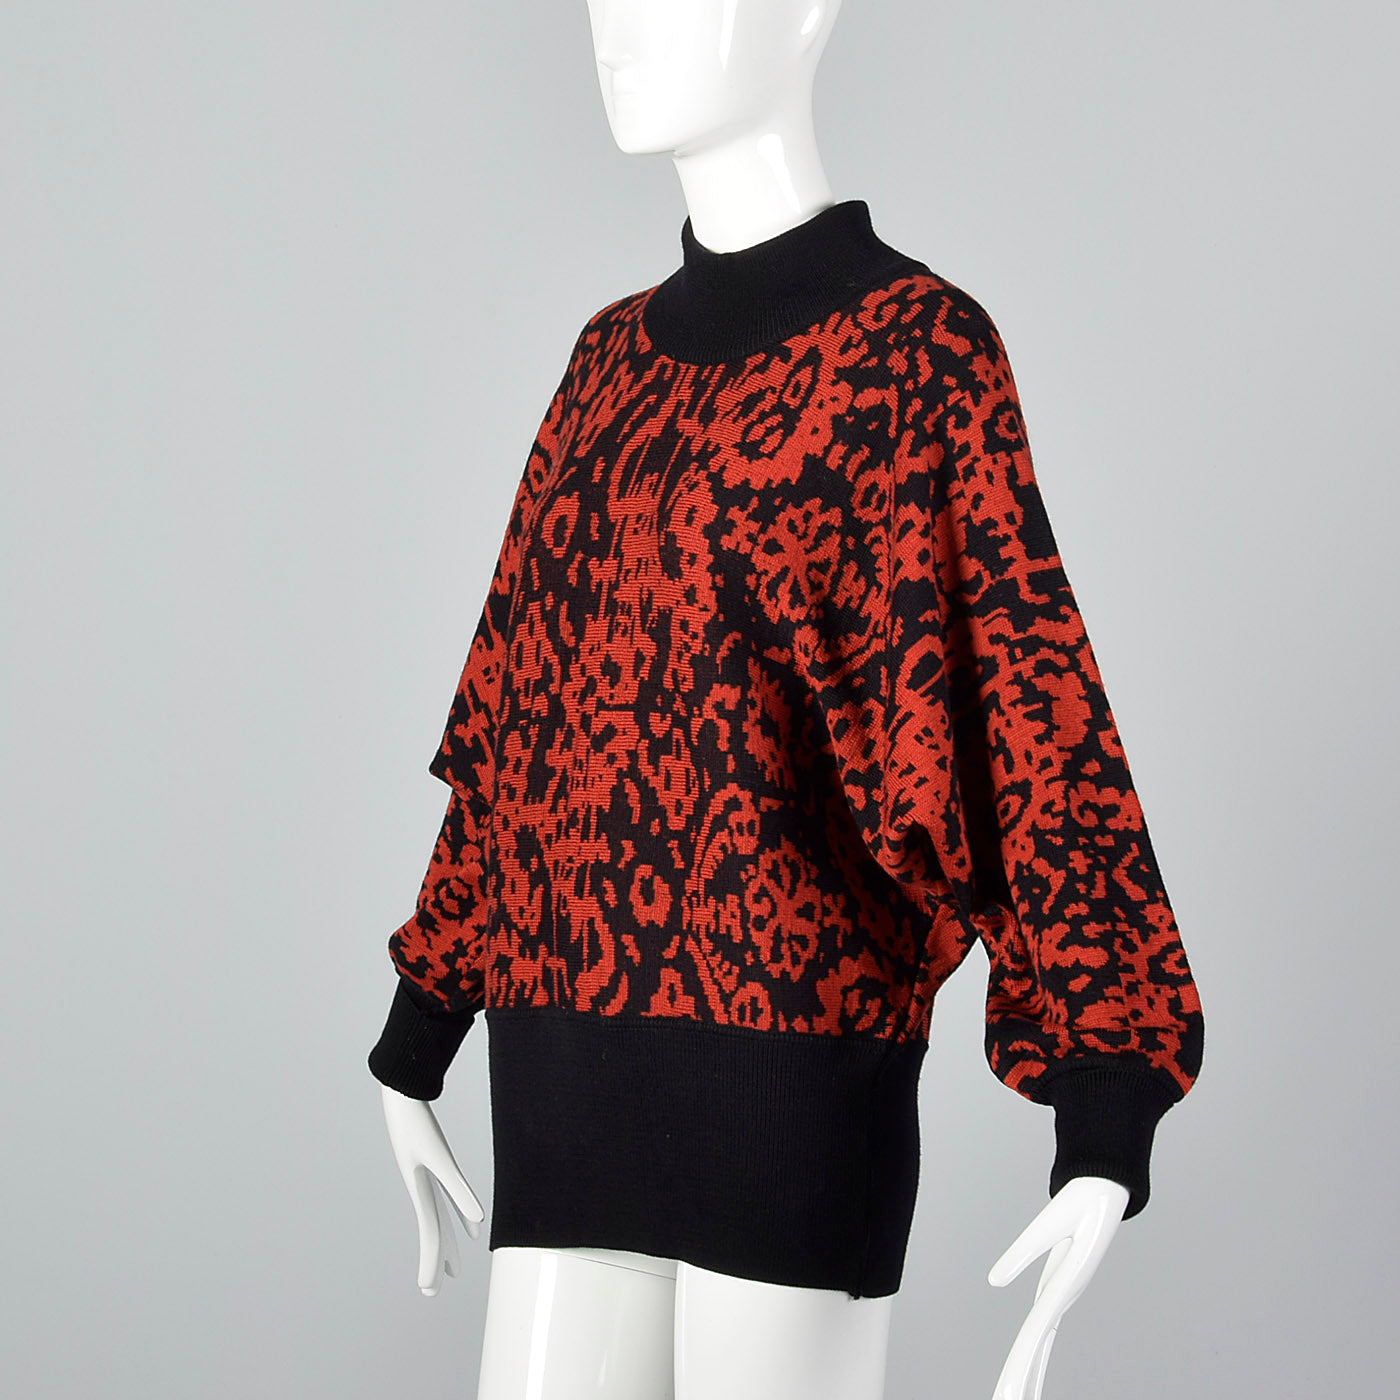 1980s Jaeger Oversized Abstract Sweater in Red & Black